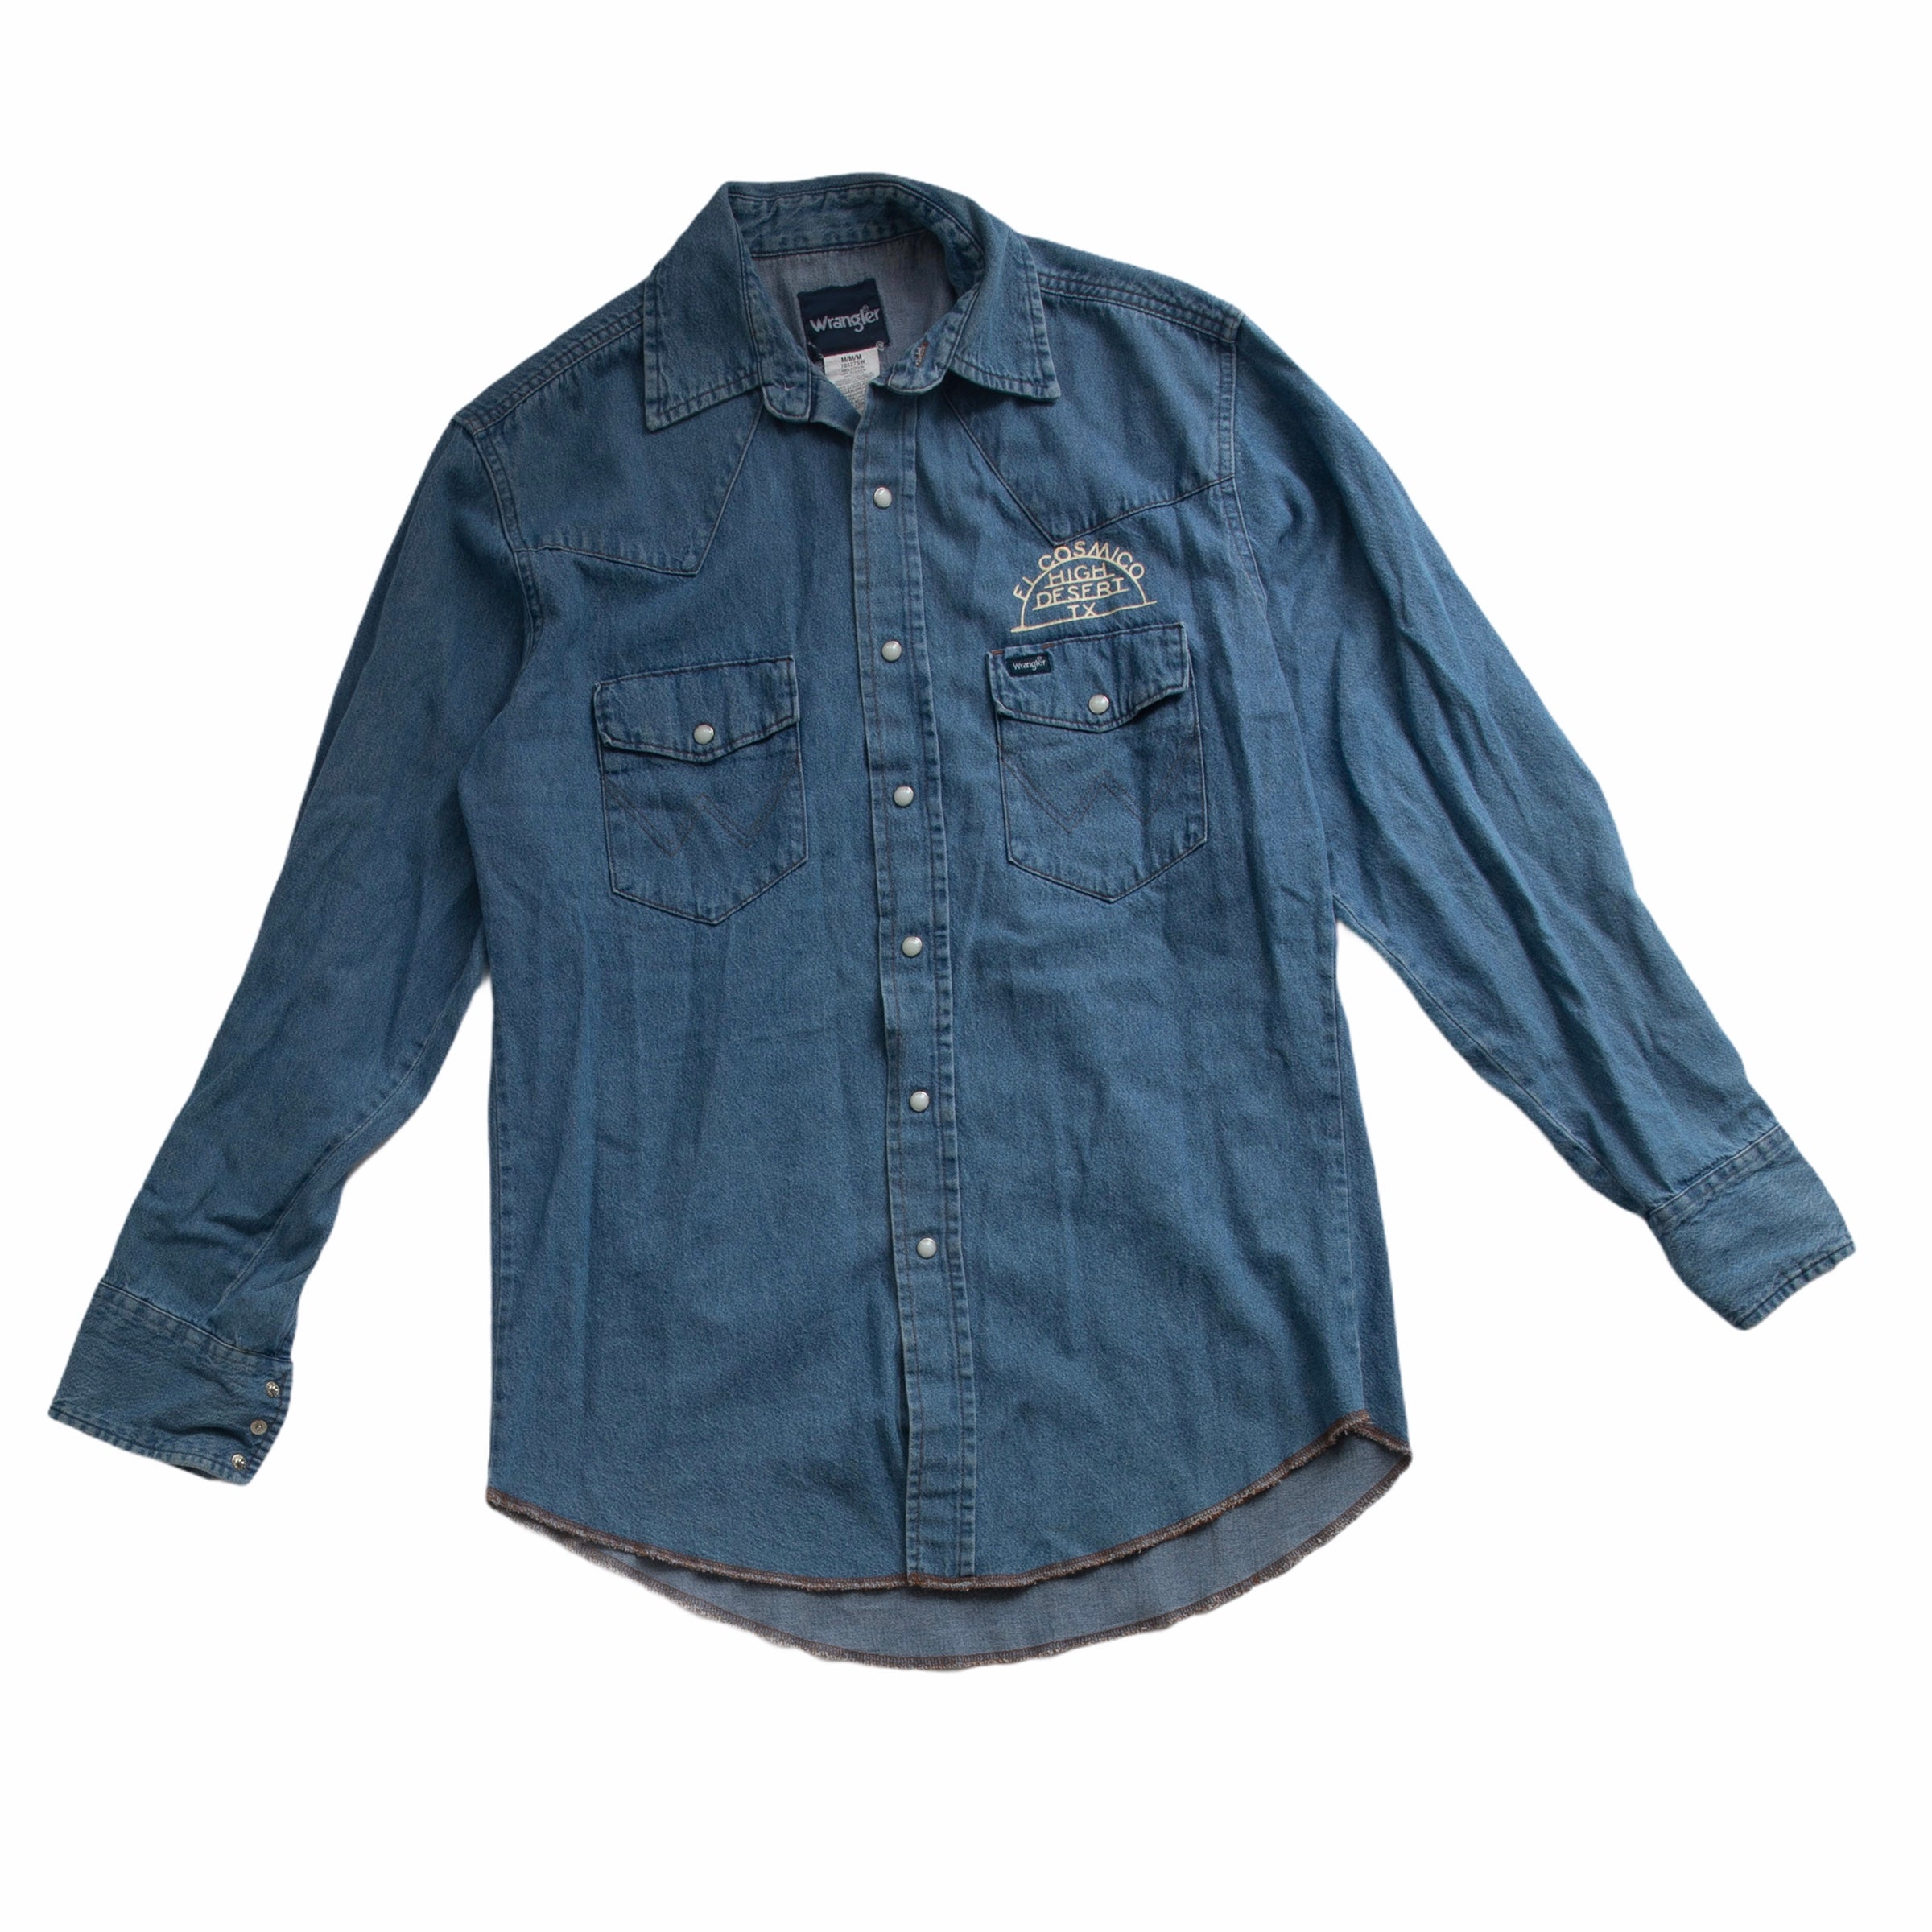 Vintage Wrangler Pearl Snap Denim Shirt 06 - Medium